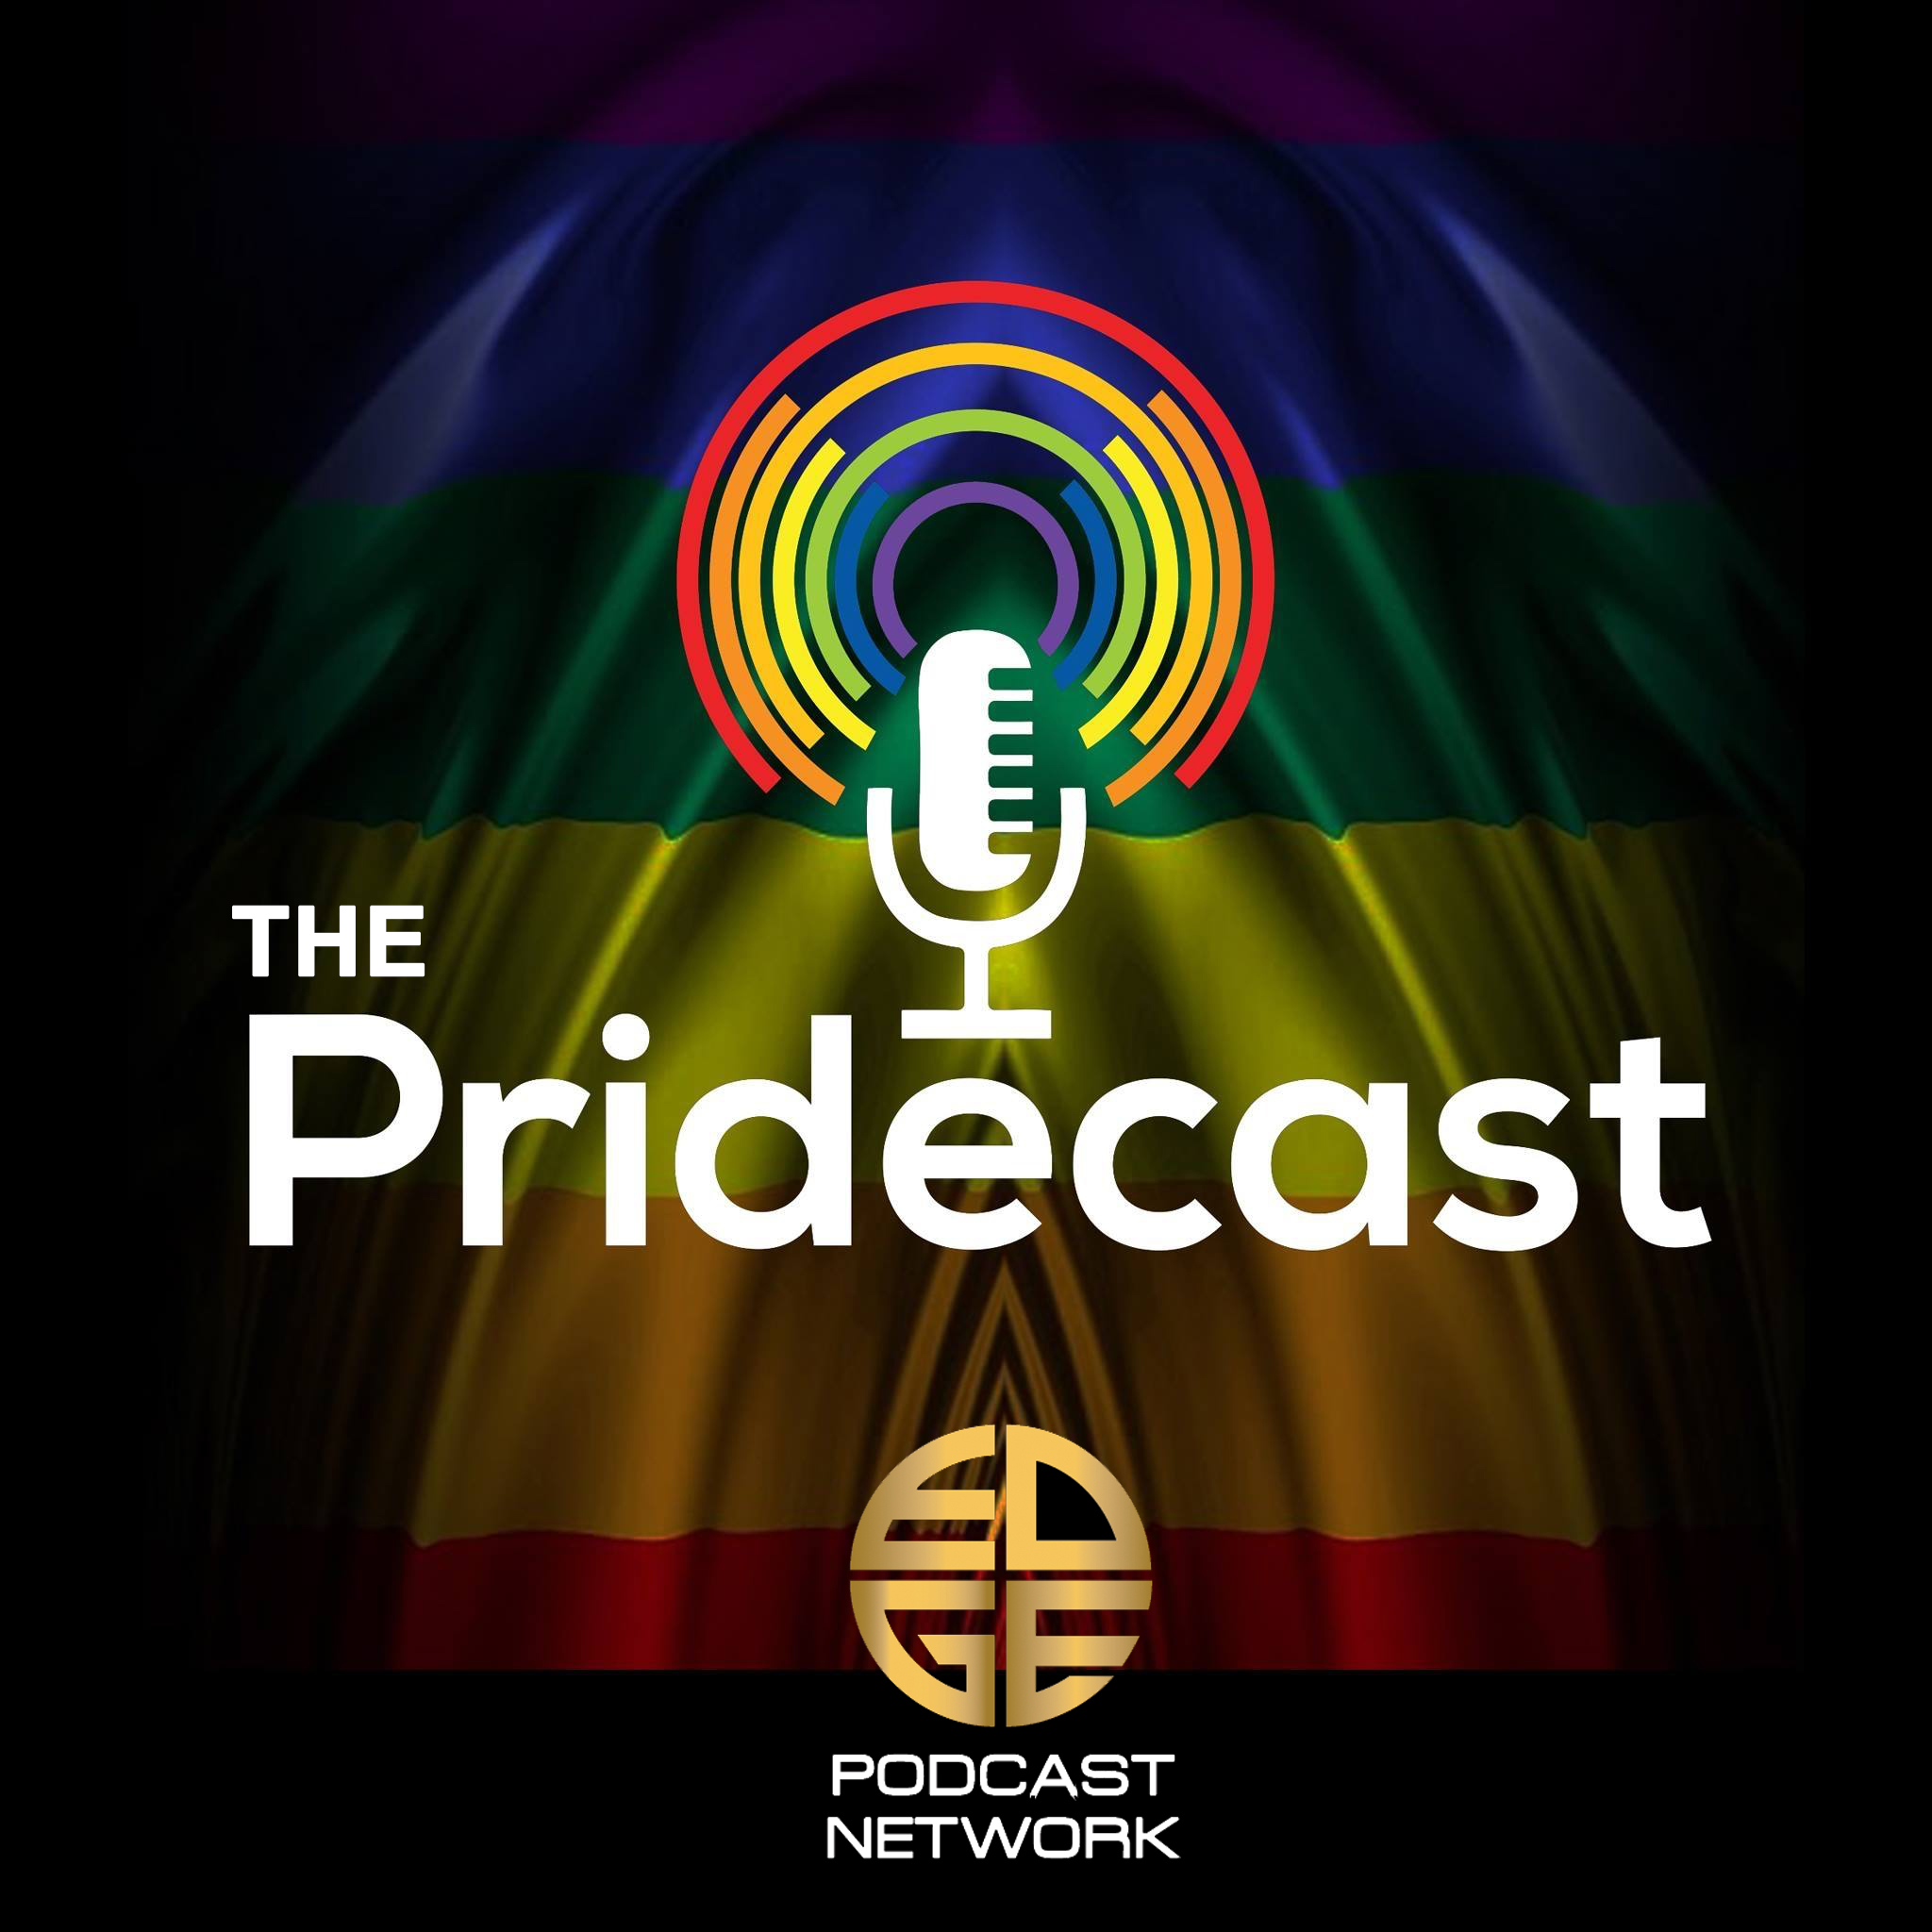 The Pridecast